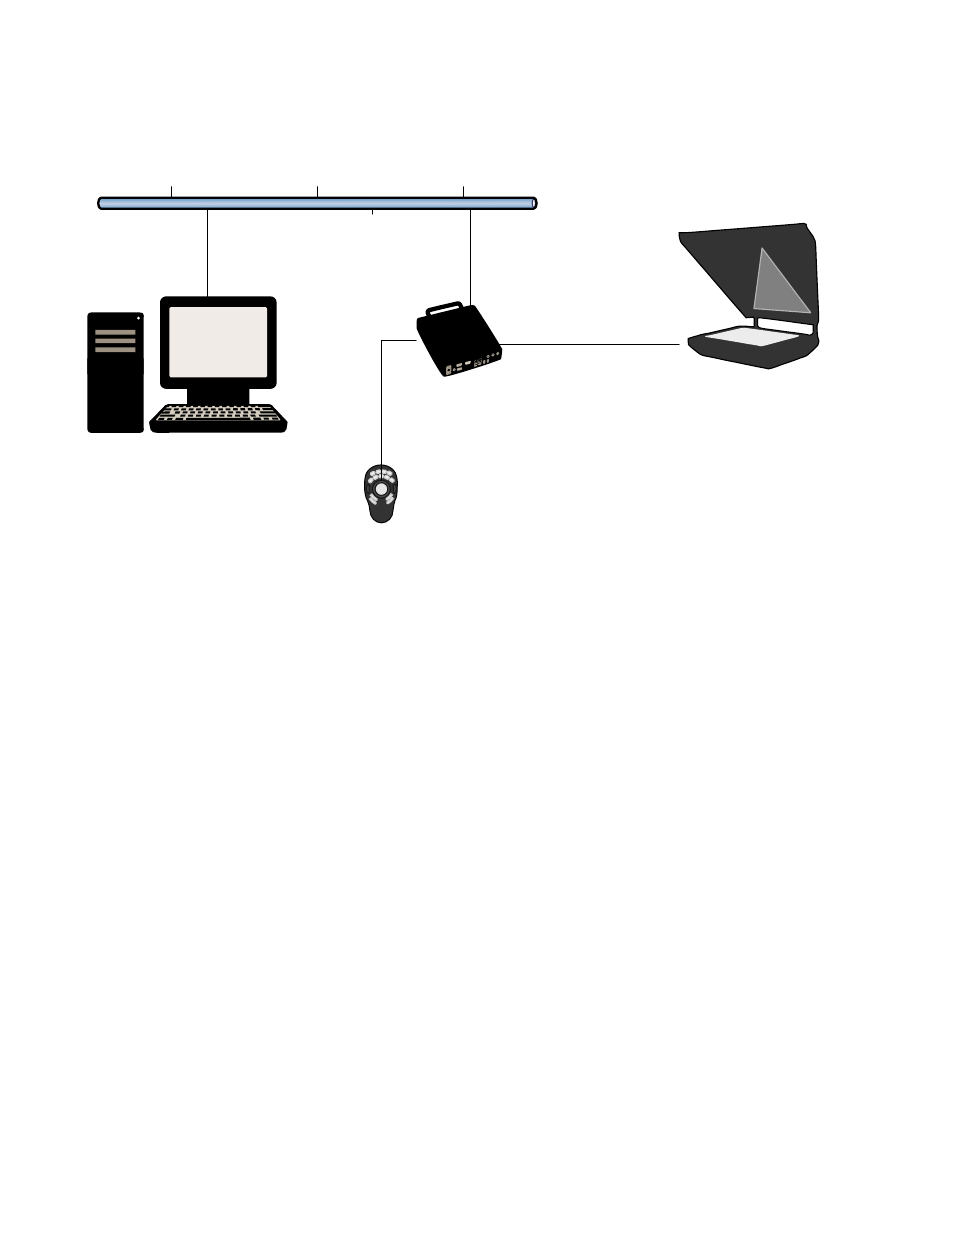 Autocue Qbox Installation Guide User Manual 11 Pages Keyboard Ps 2 Connector Wiring Diagram